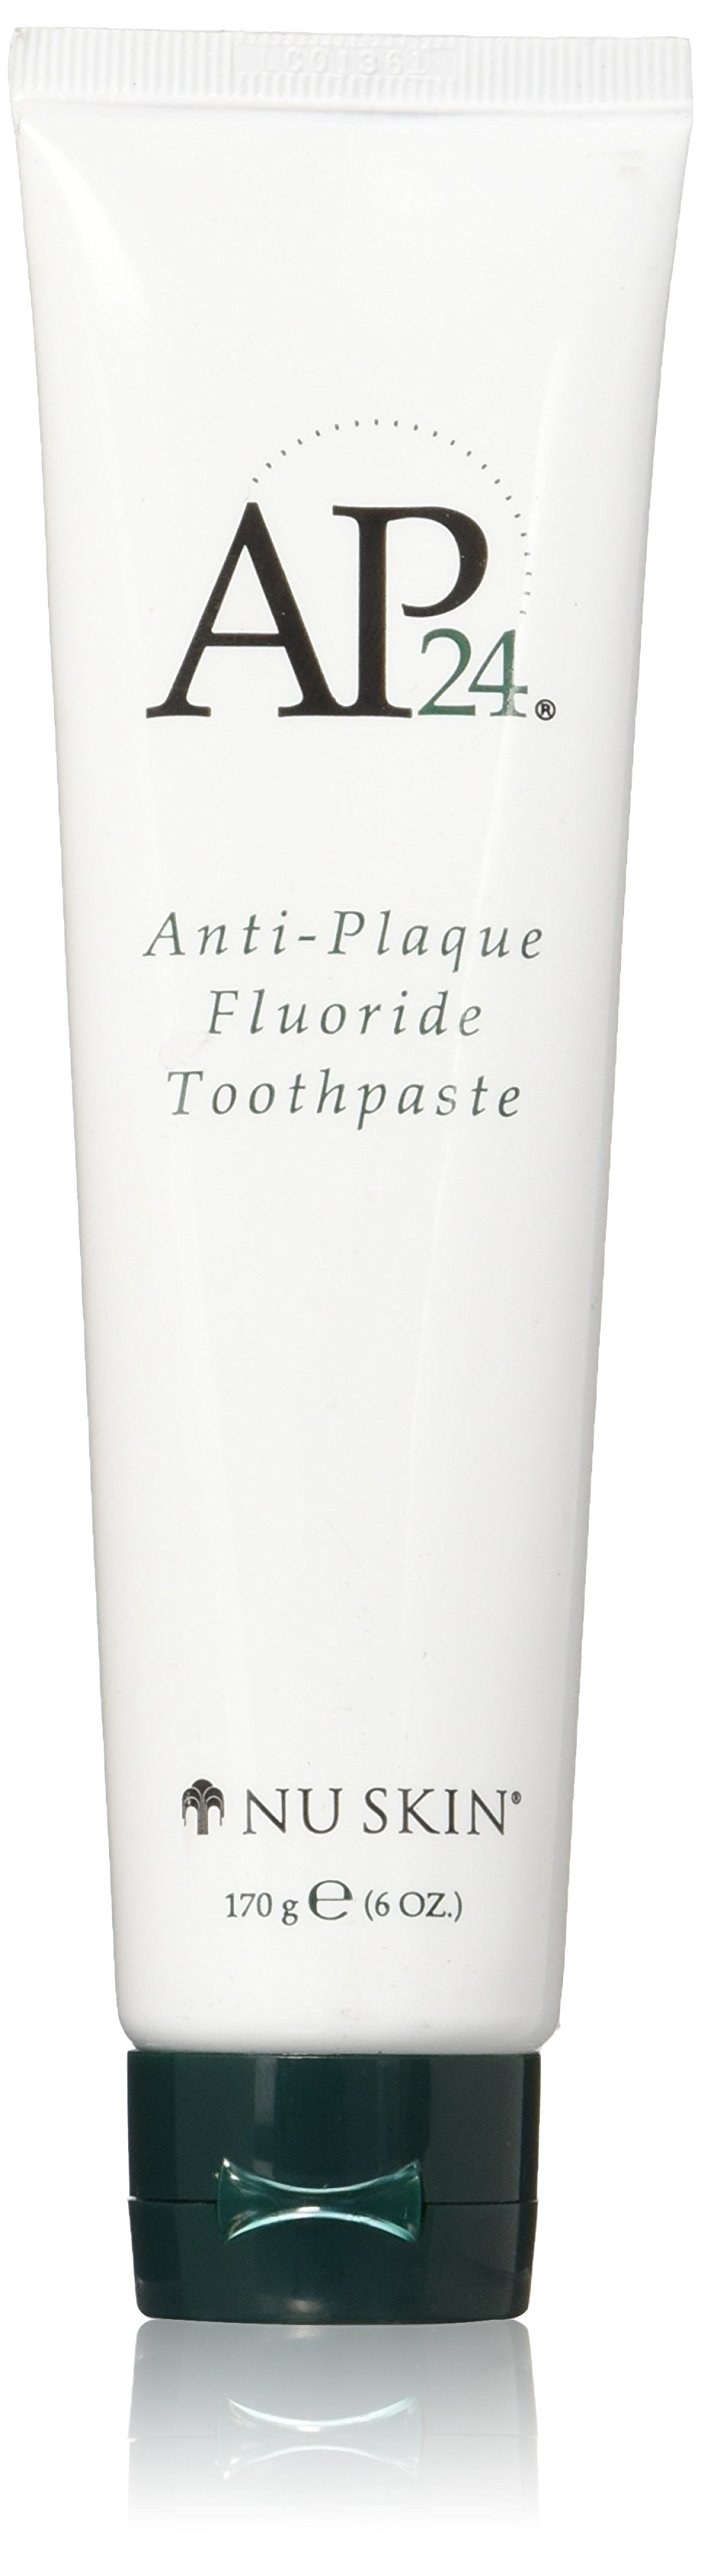 Nu Skin Ap-24 Anti-plaque Fluoride Toothpaste,6oz